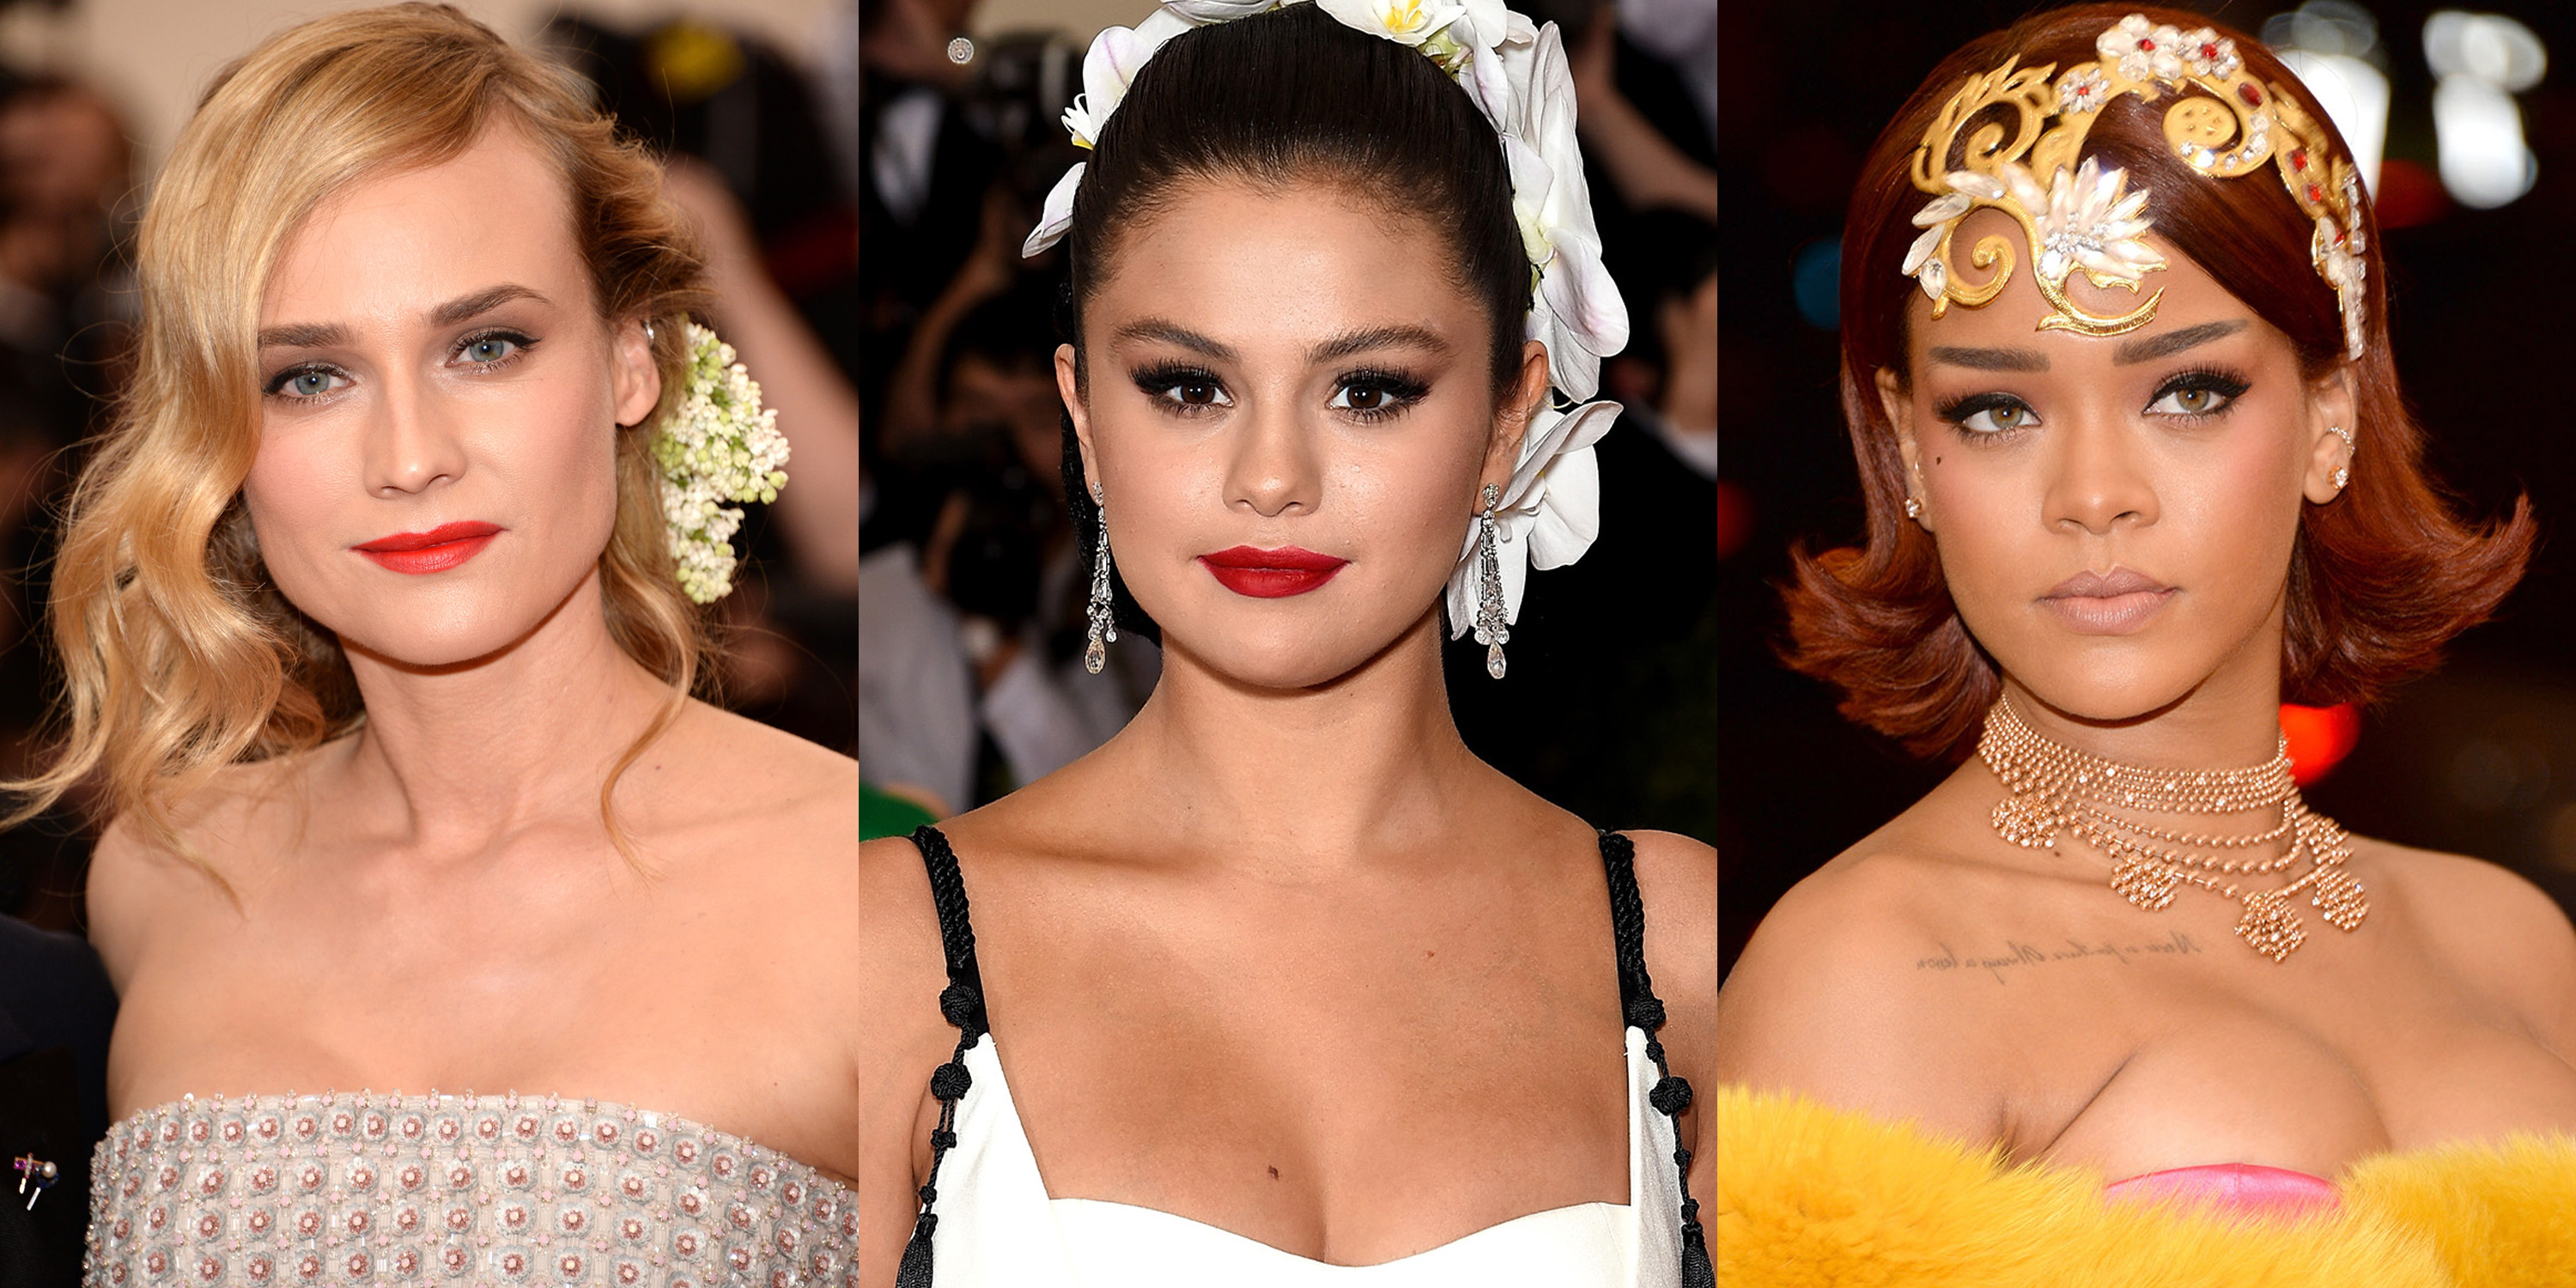 book of haircuts met gala 2015 on the carpet best hair and 5657 | 1430791619 hbz met gala beauty 2015 00 index